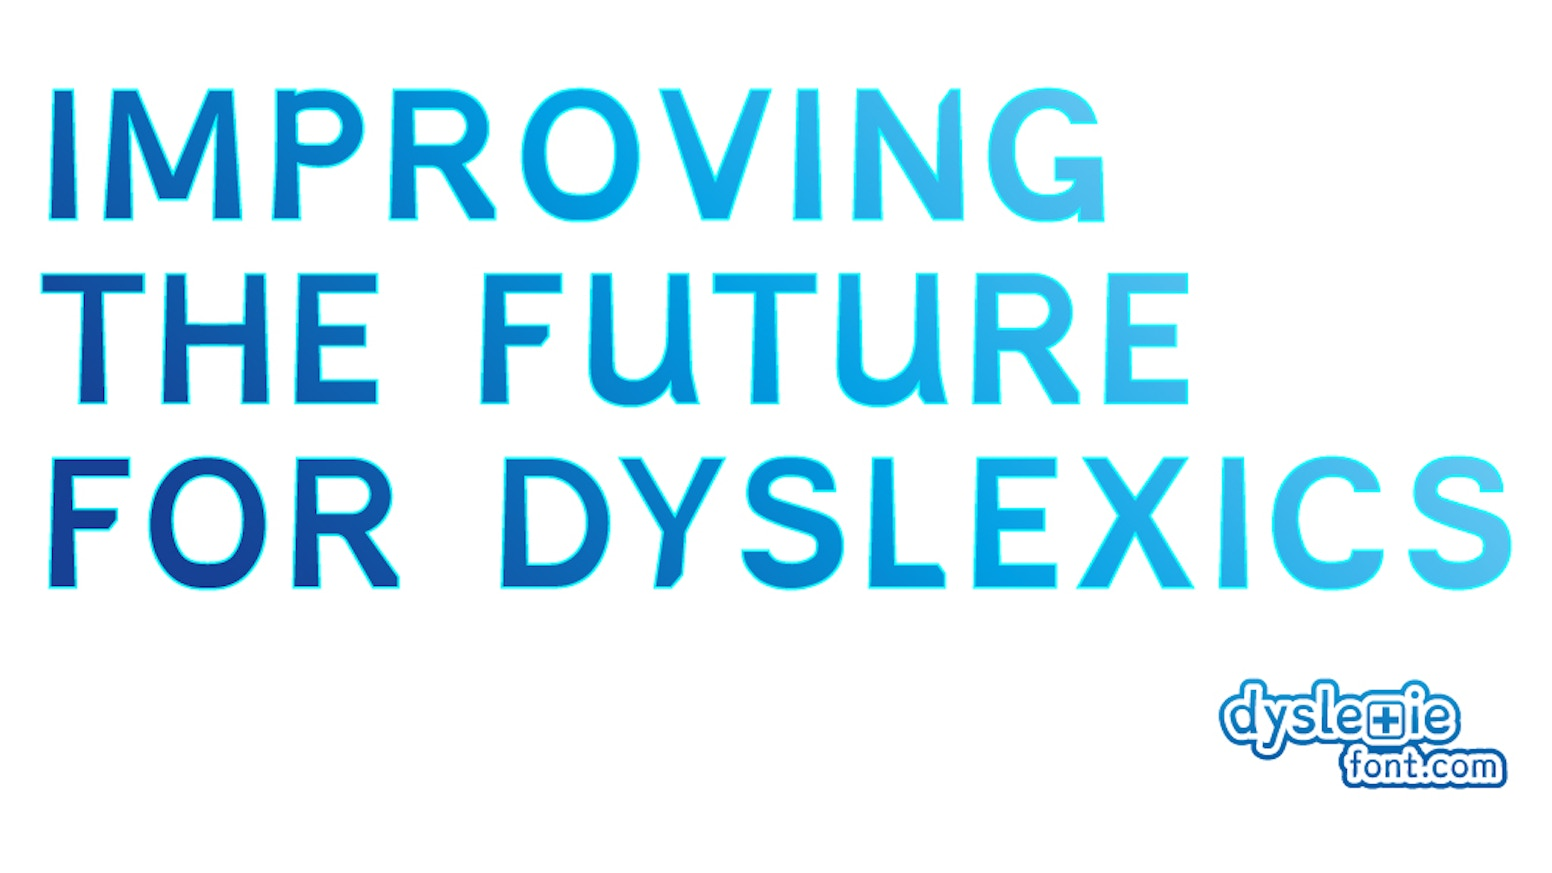 dyspraxia research papers Search for more papers by screening tests for dyslexia, dyspraxia and reading in students with and without dyslexia, journal of research in special.